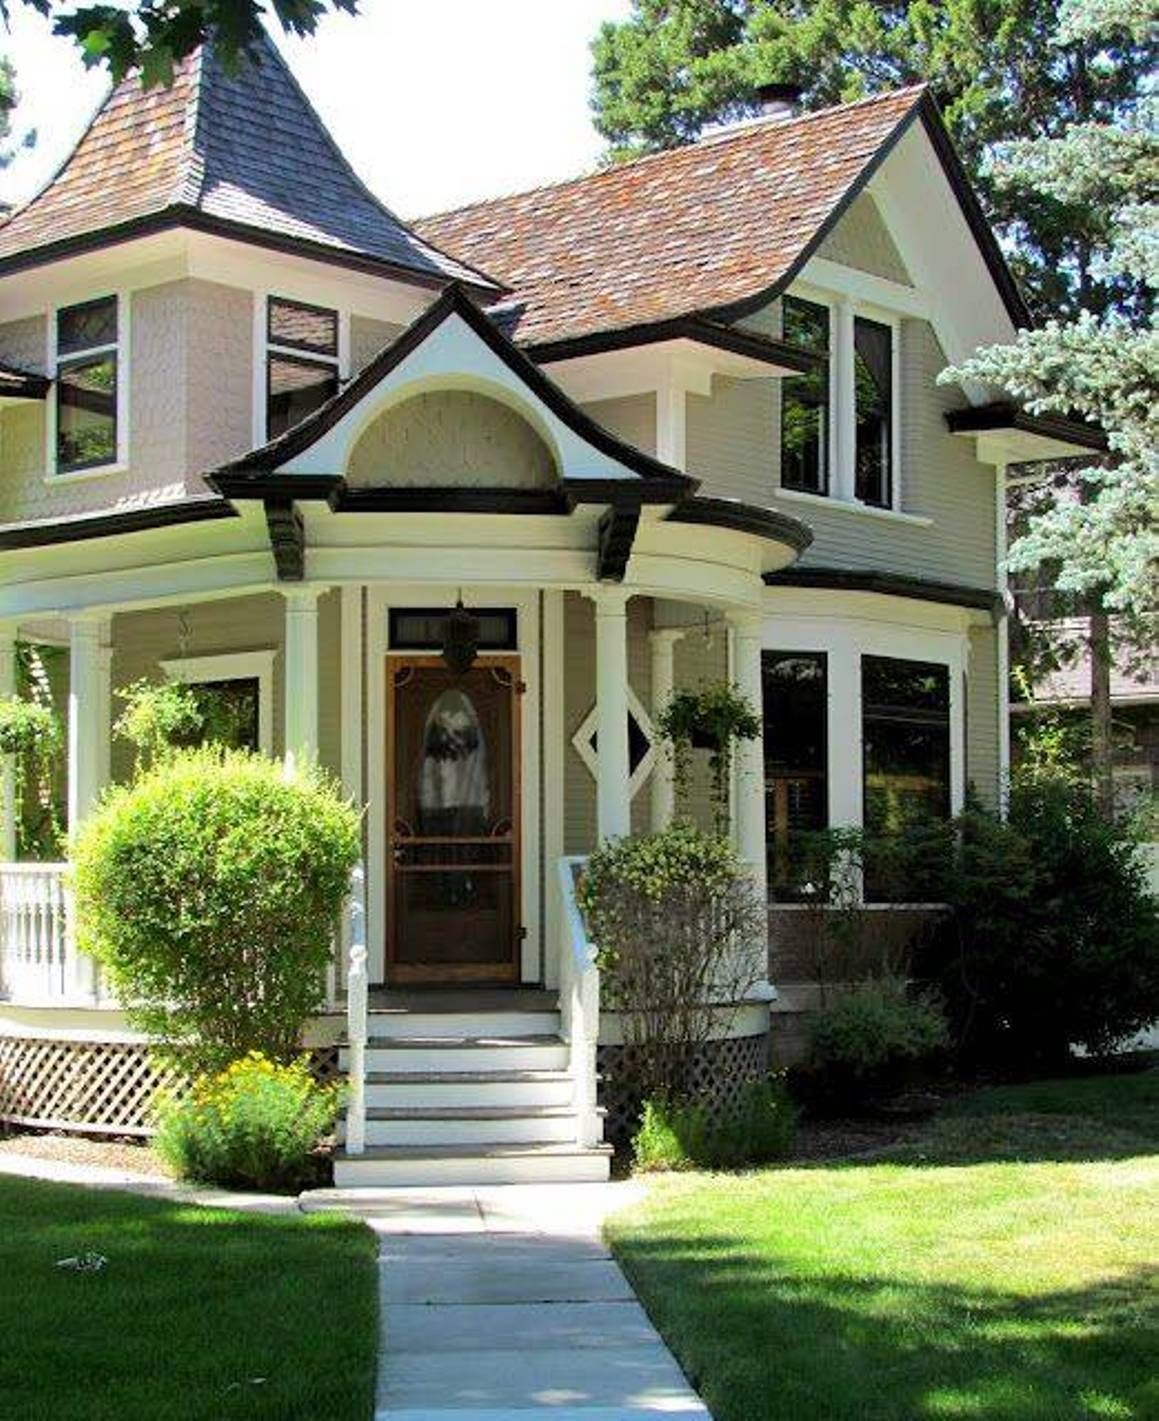 Neutral house colors exterior google search house for Modern painted houses pictures